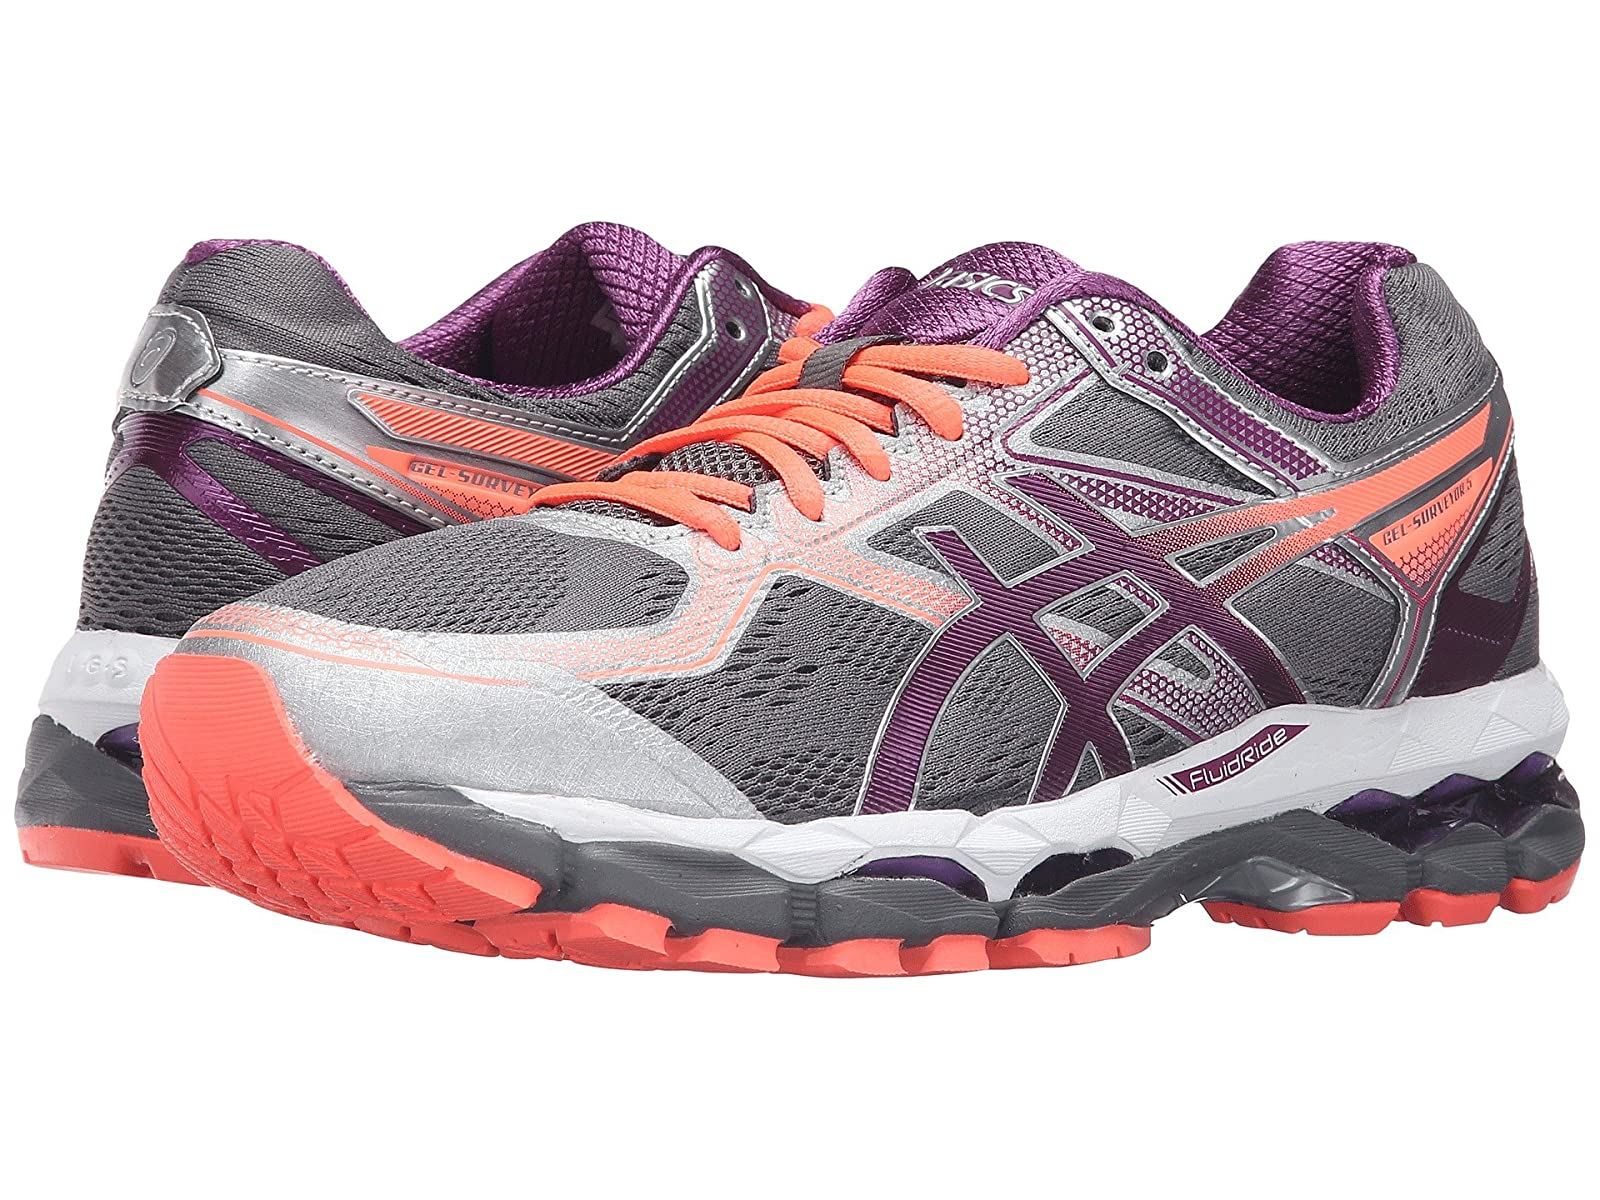 ASICS Gel-Surveyor® 5Cheap and distinctive eye-catching shoes